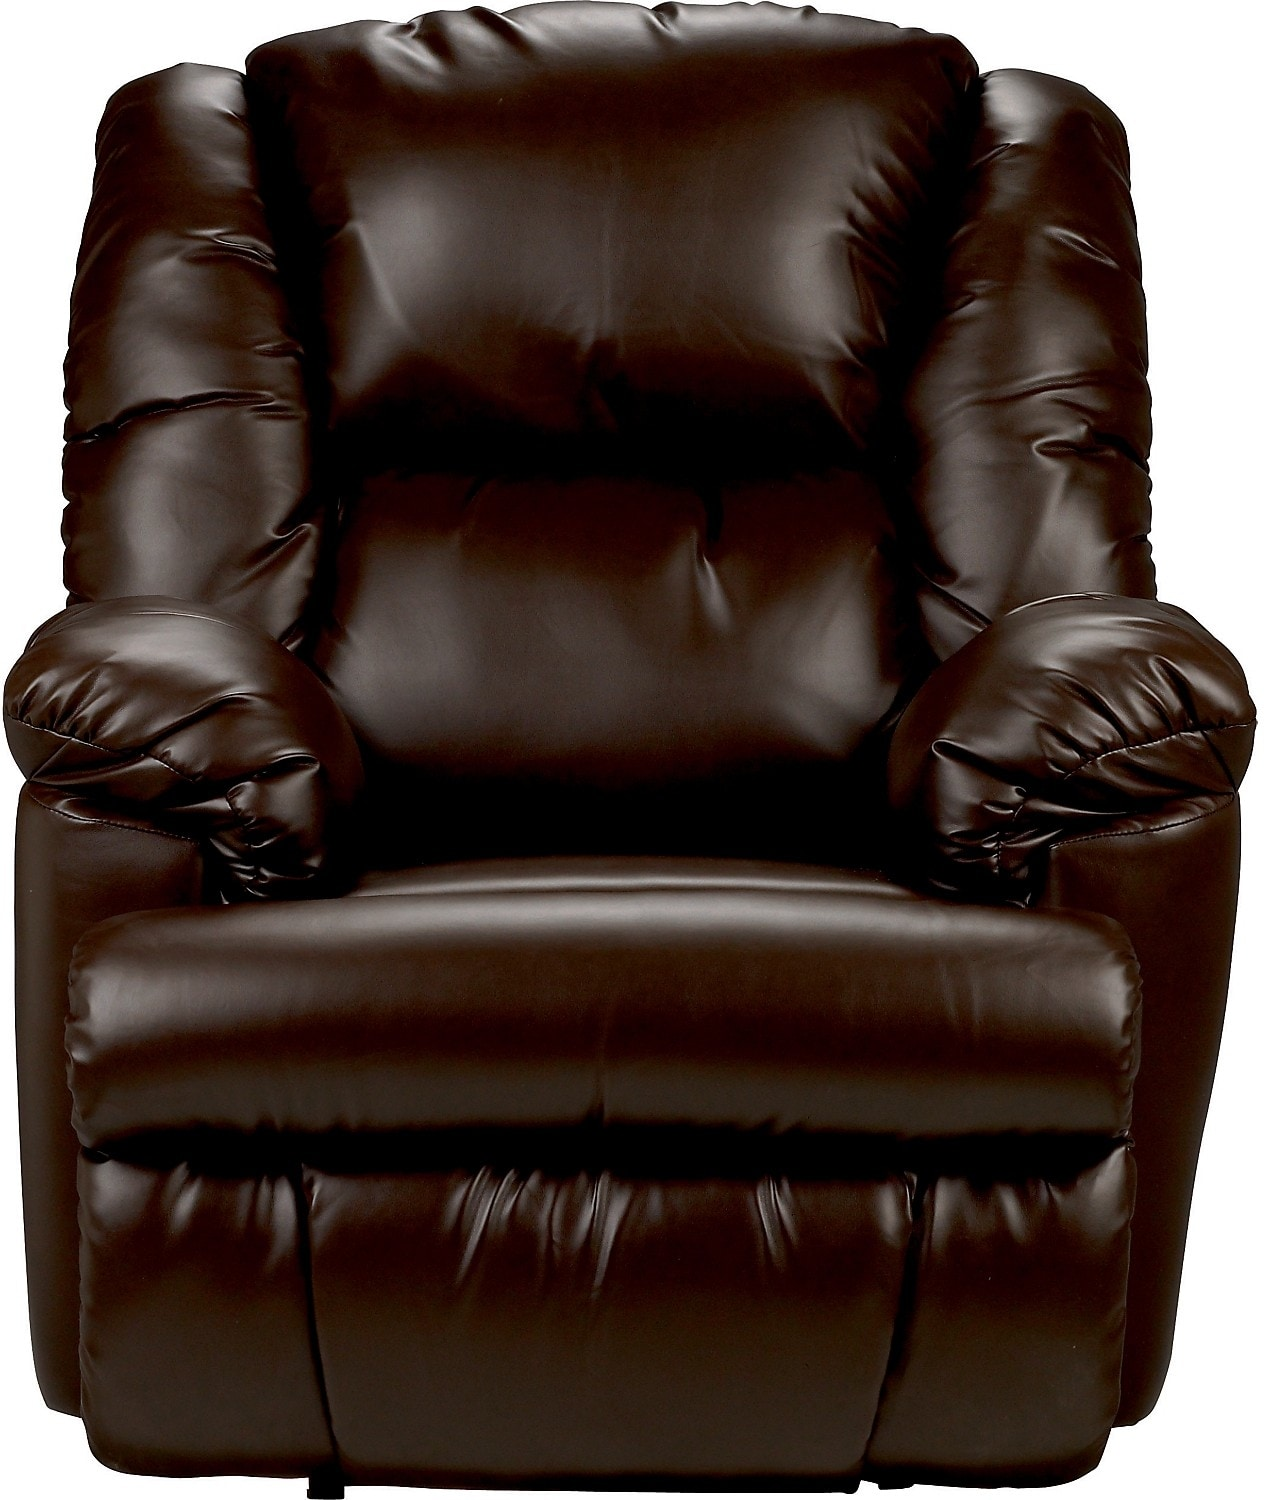 bmaxx bonded leather power reclining chair u2013 brown - Brown Leather Recliner